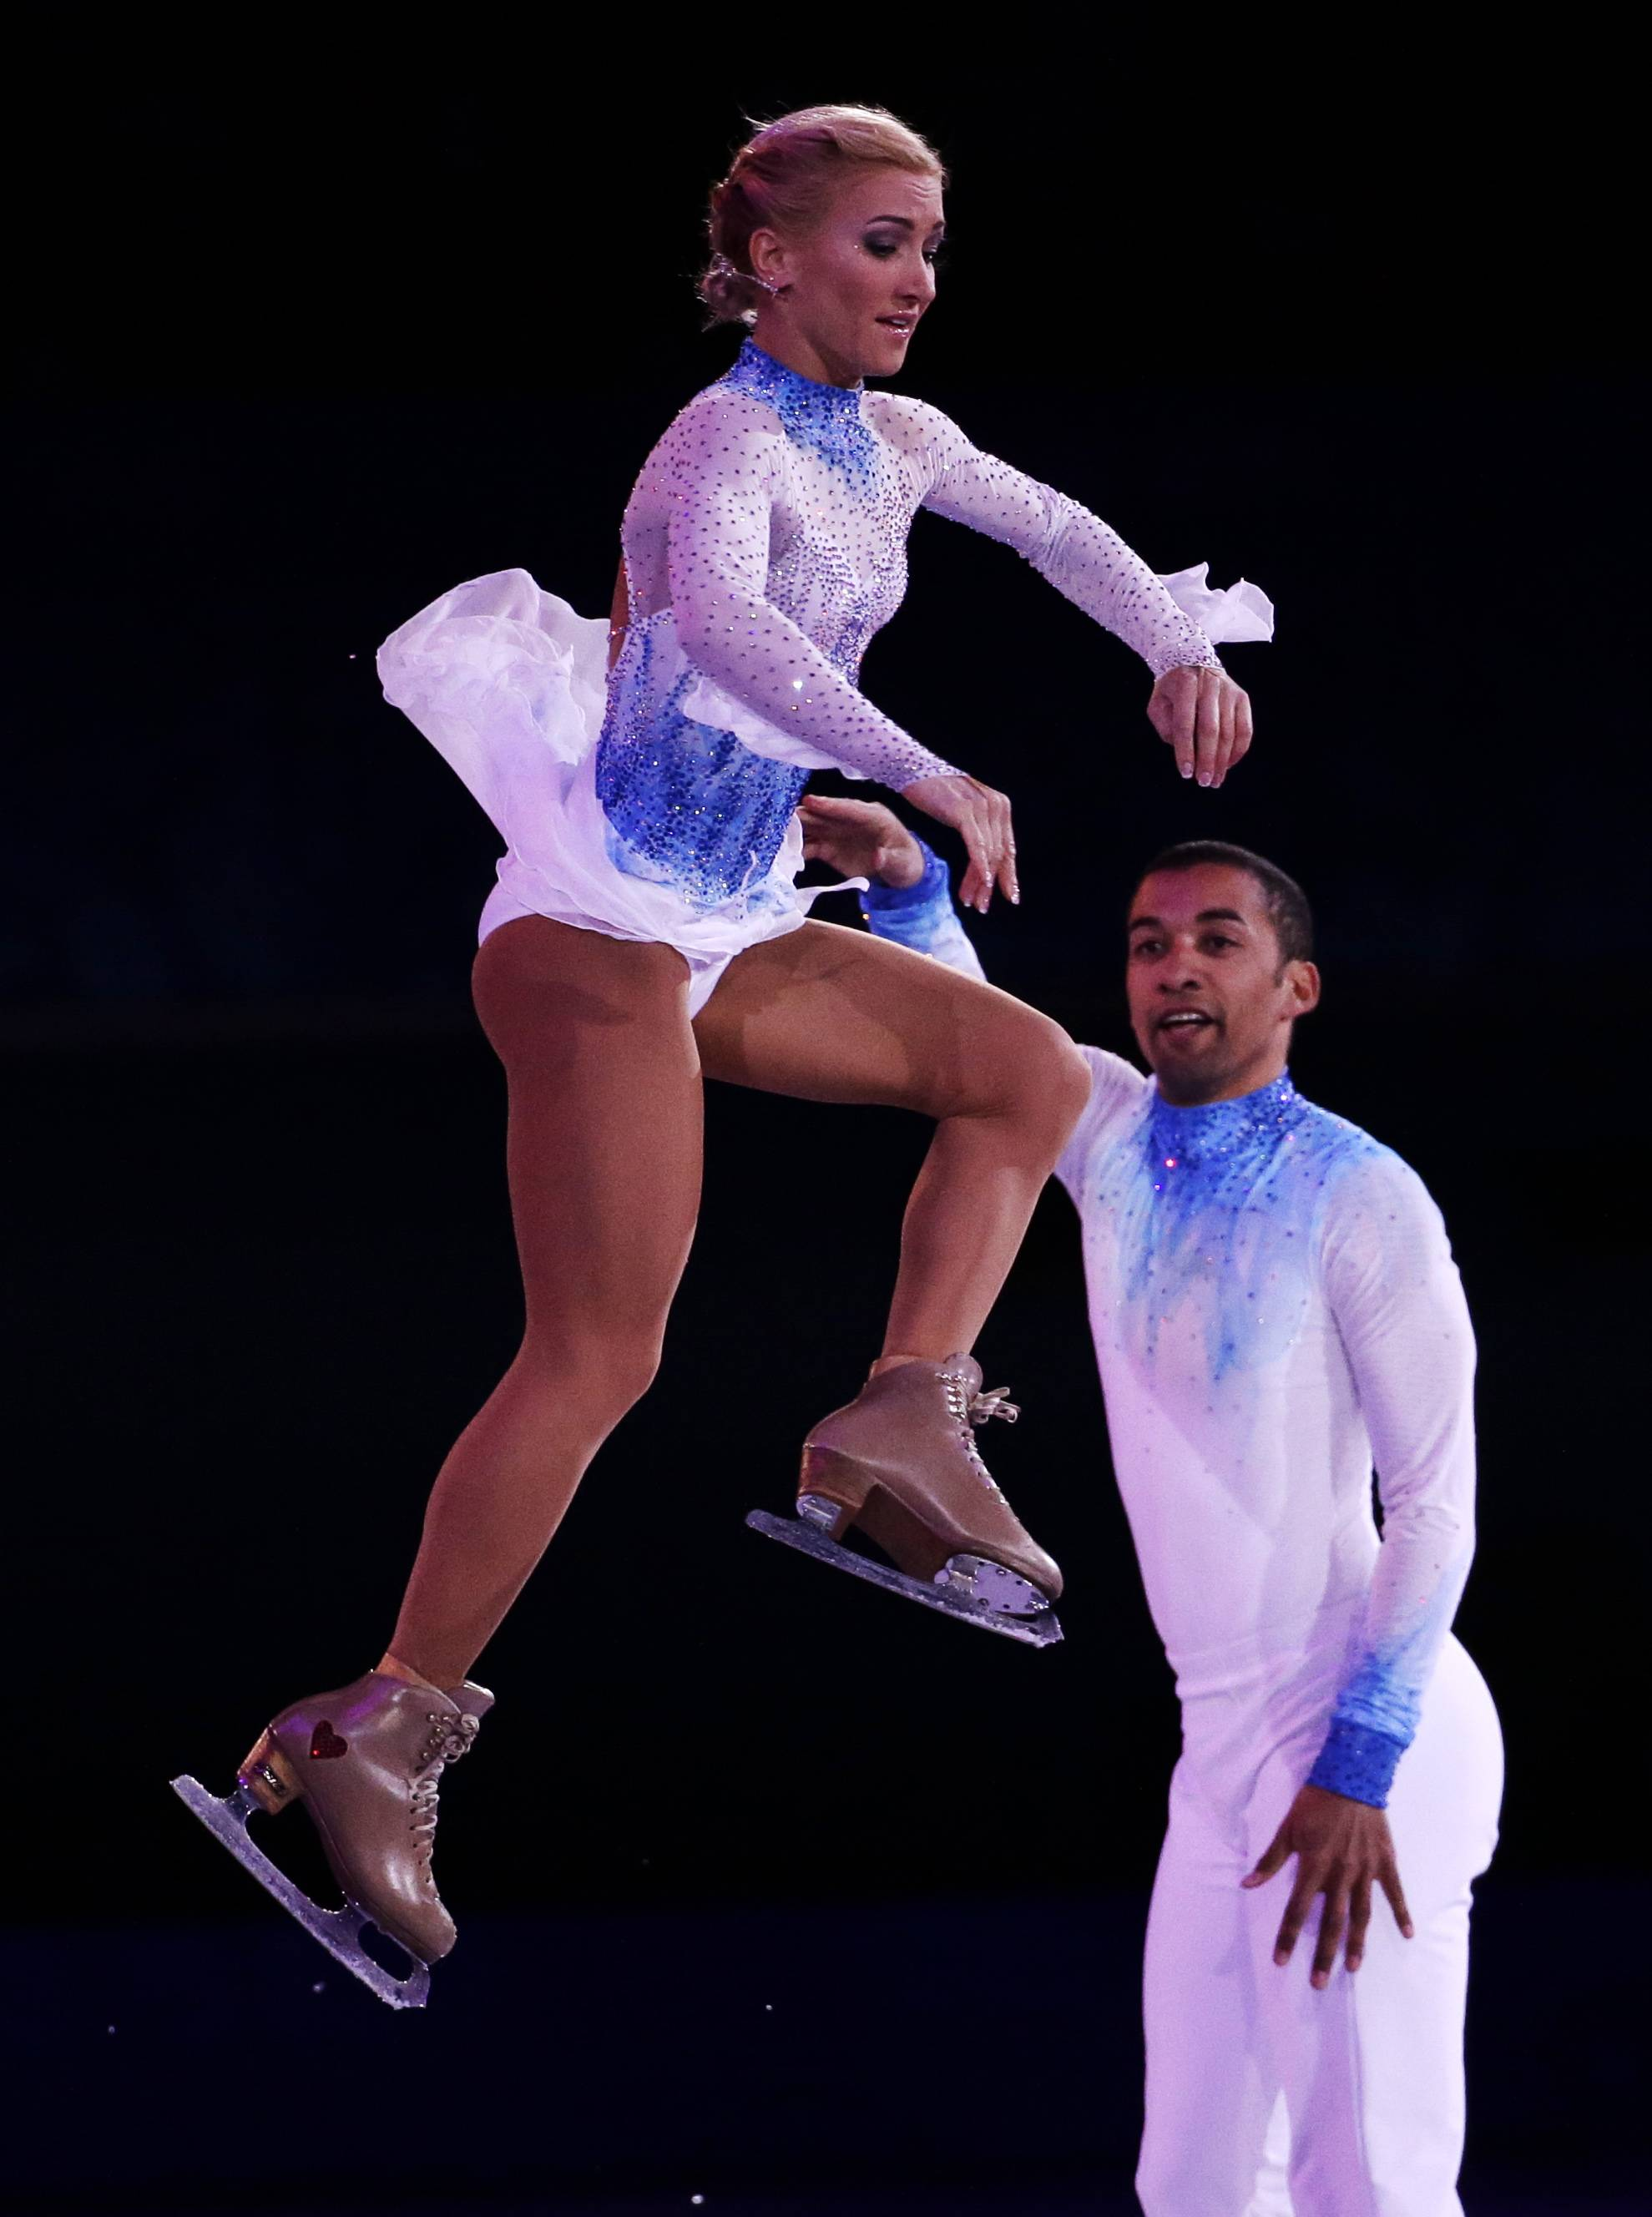 Aliona Savchenko and Robin Szolkowy of Germany perform during the figure skating exhibition gala at the Iceberg Skating Palace during the 2014 Winter Olympics, Saturday, Feb. 22, 2014, in Sochi, Russia.